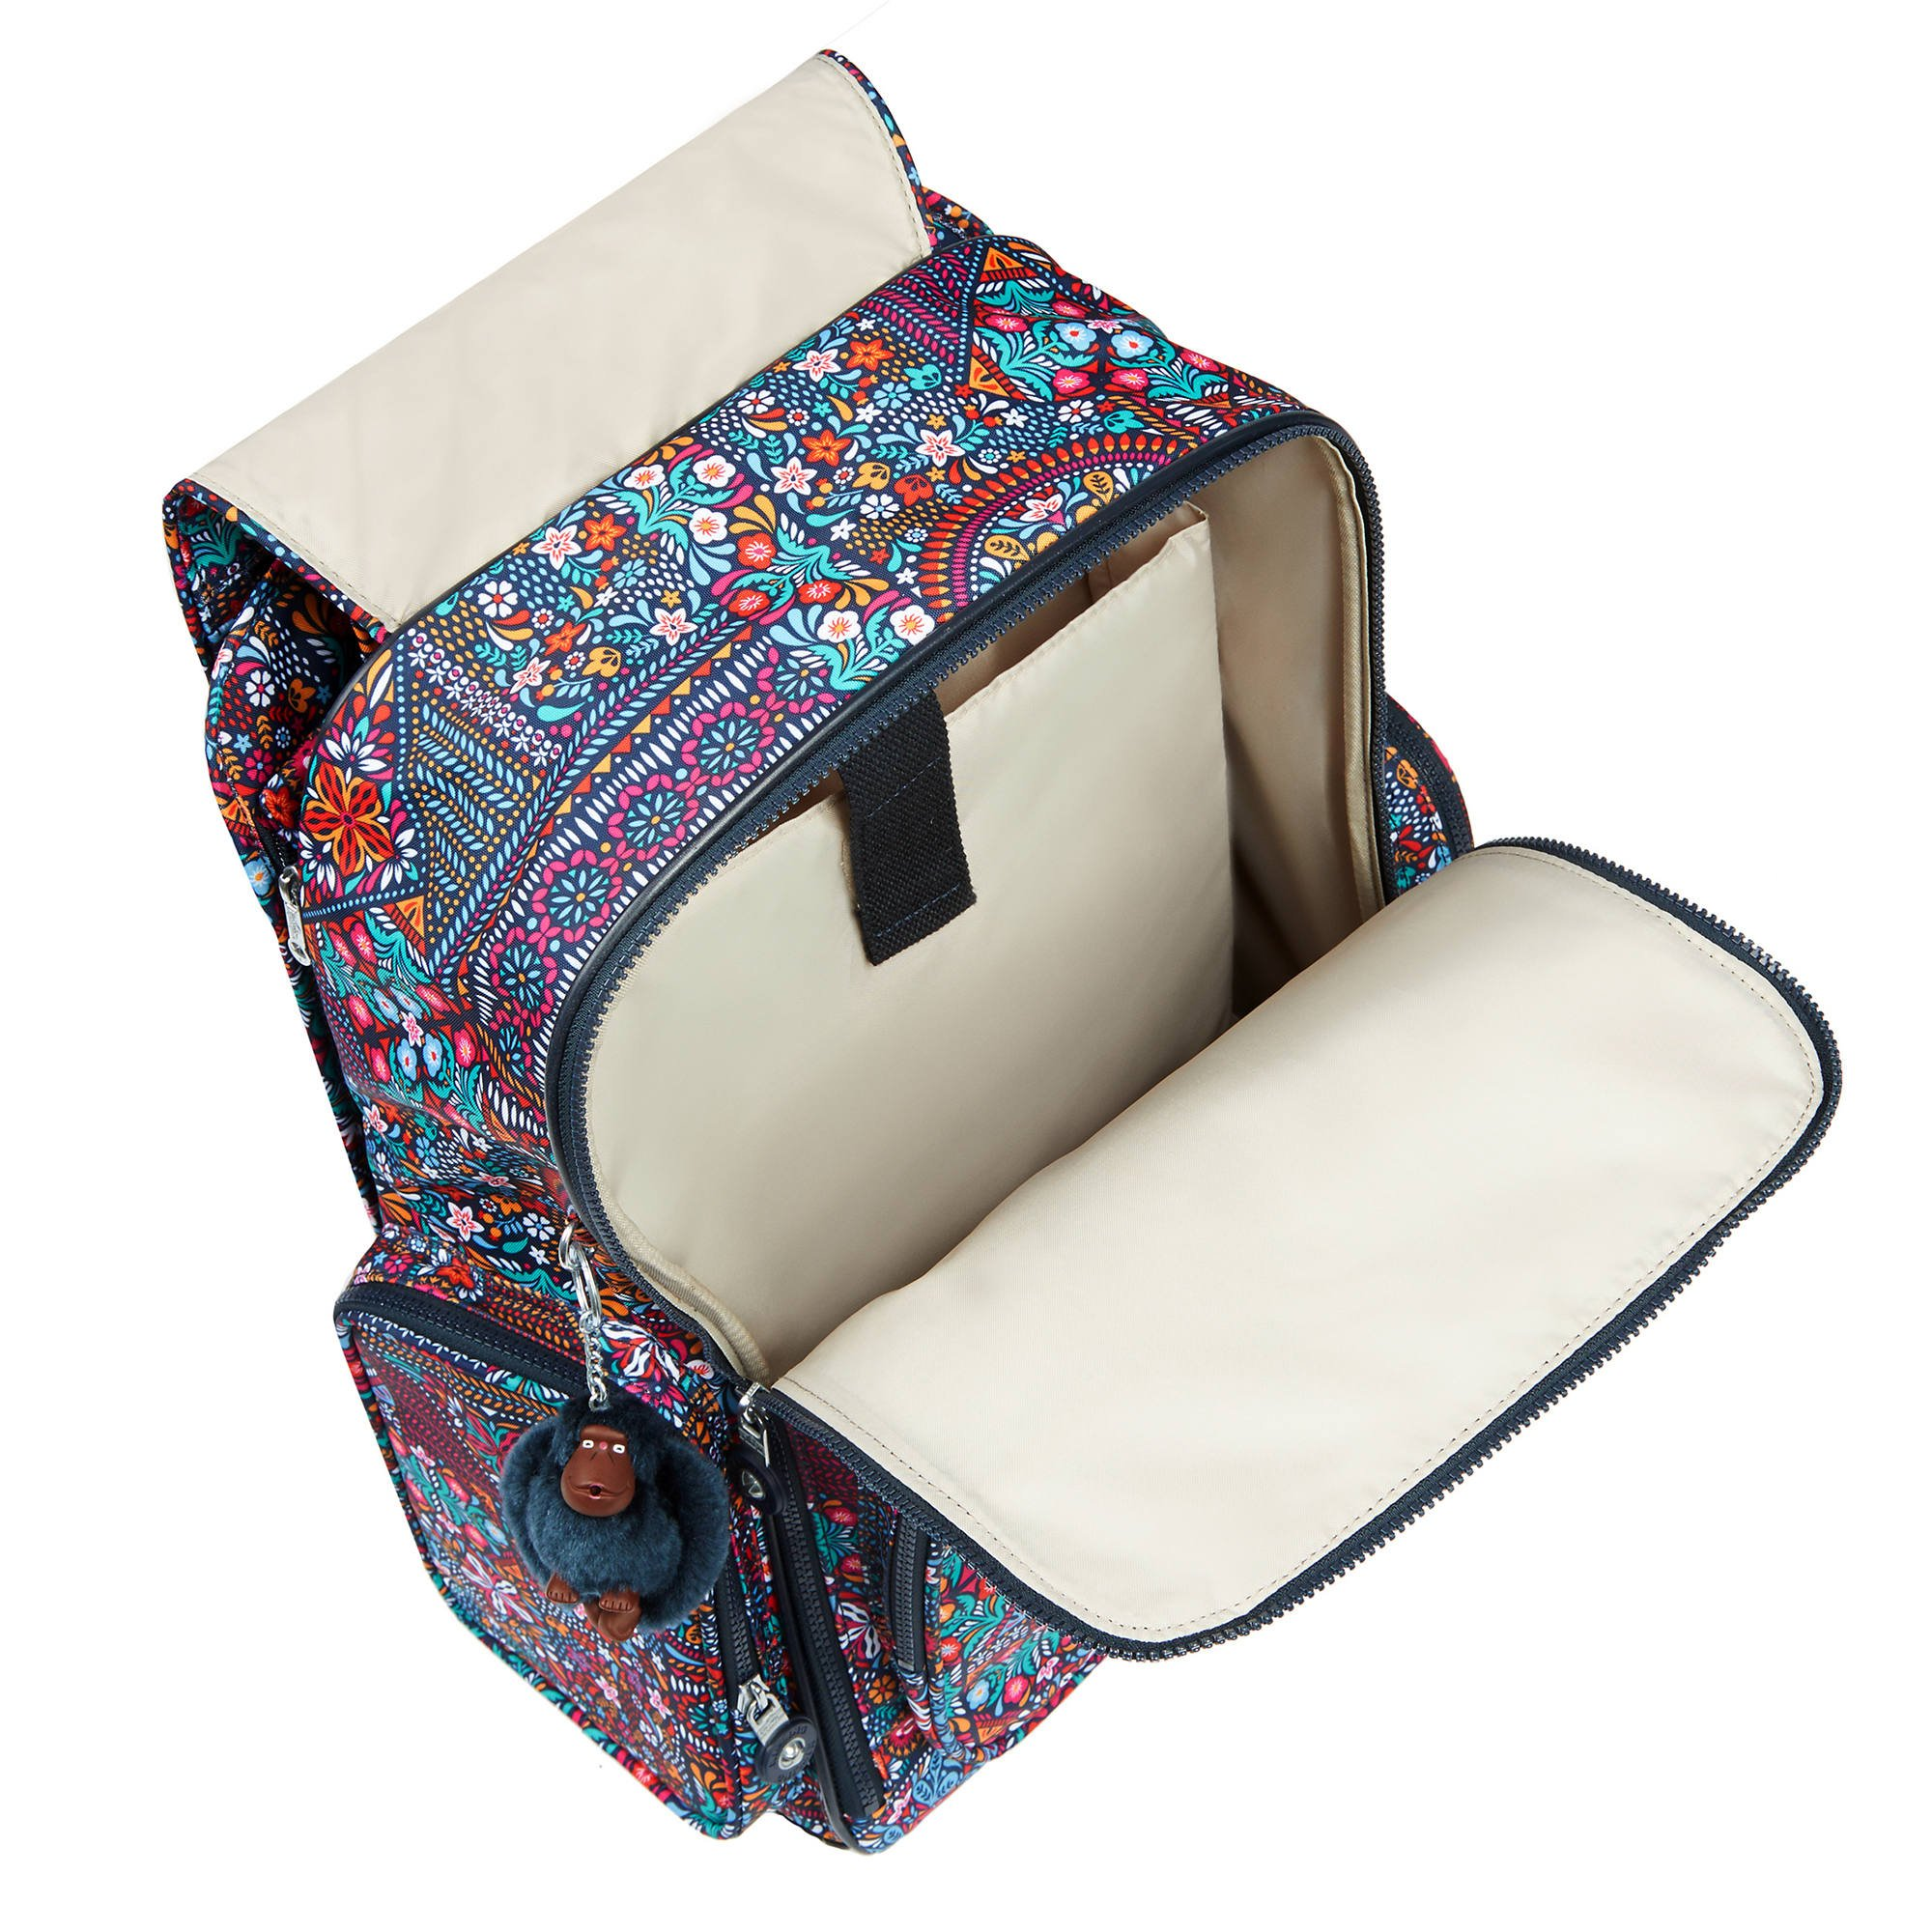 Kipling Women's Alcatraz Ii Printed Rolling Laptop Backpack One Size Dizzy Darling Multi by Kipling (Image #2)